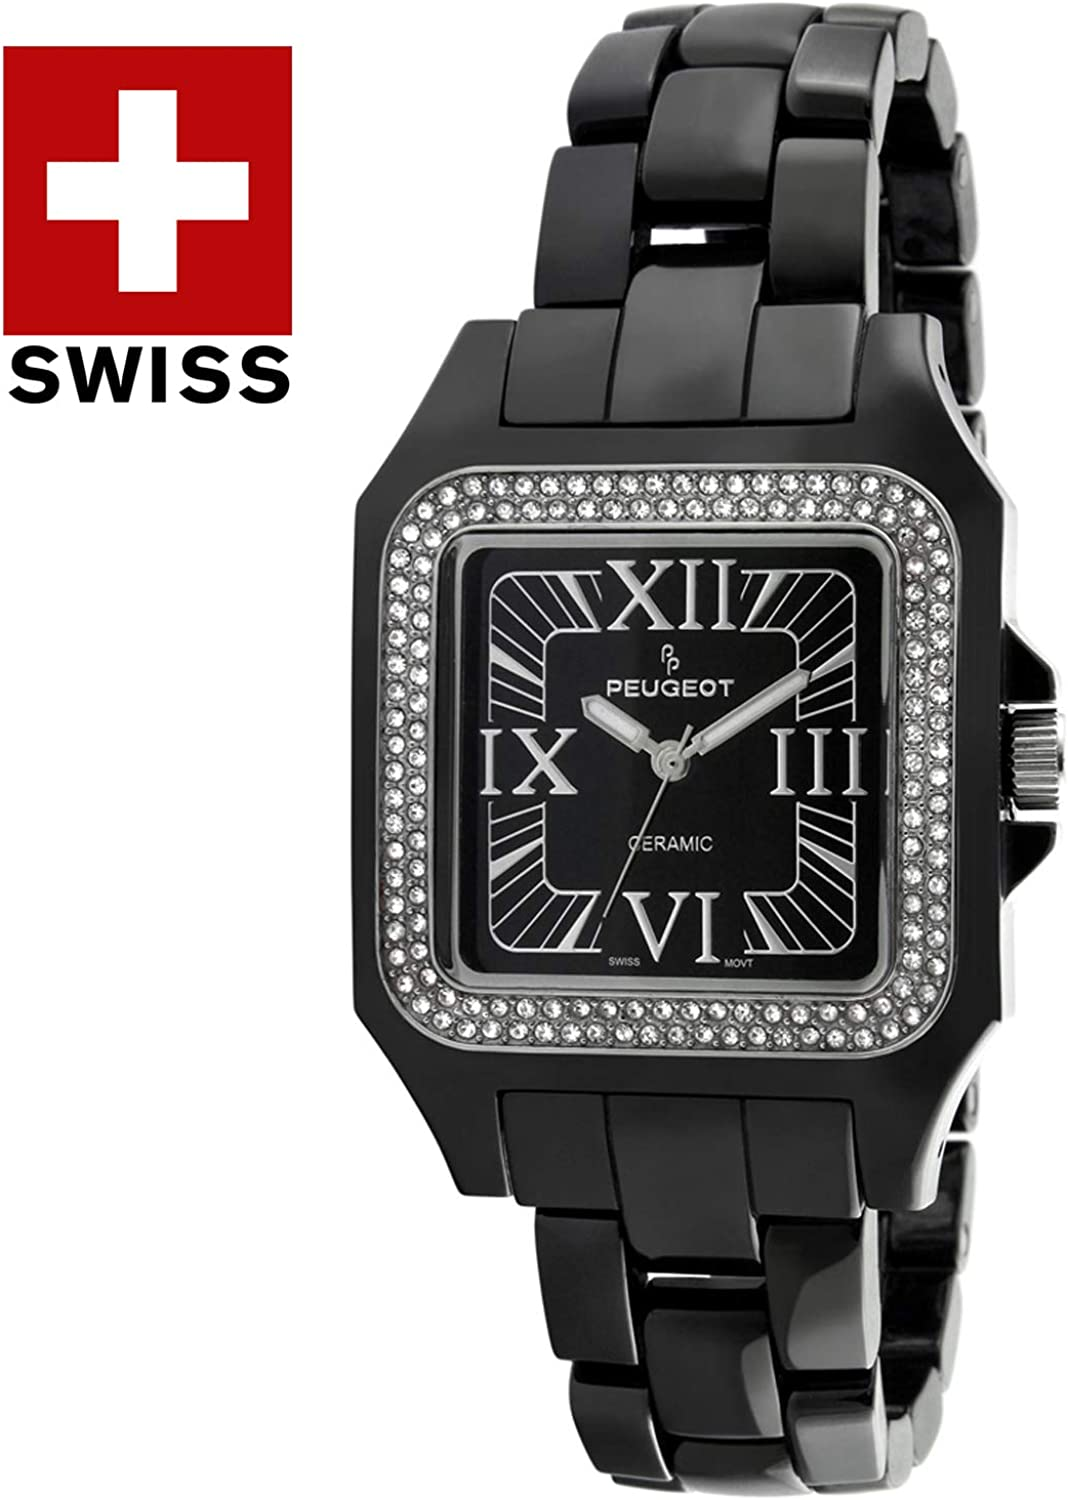 Peugeot Swiss Women Genuine Ceramic Watch - Square Case with Swarovski Crystal Bezel and Bracelet Black